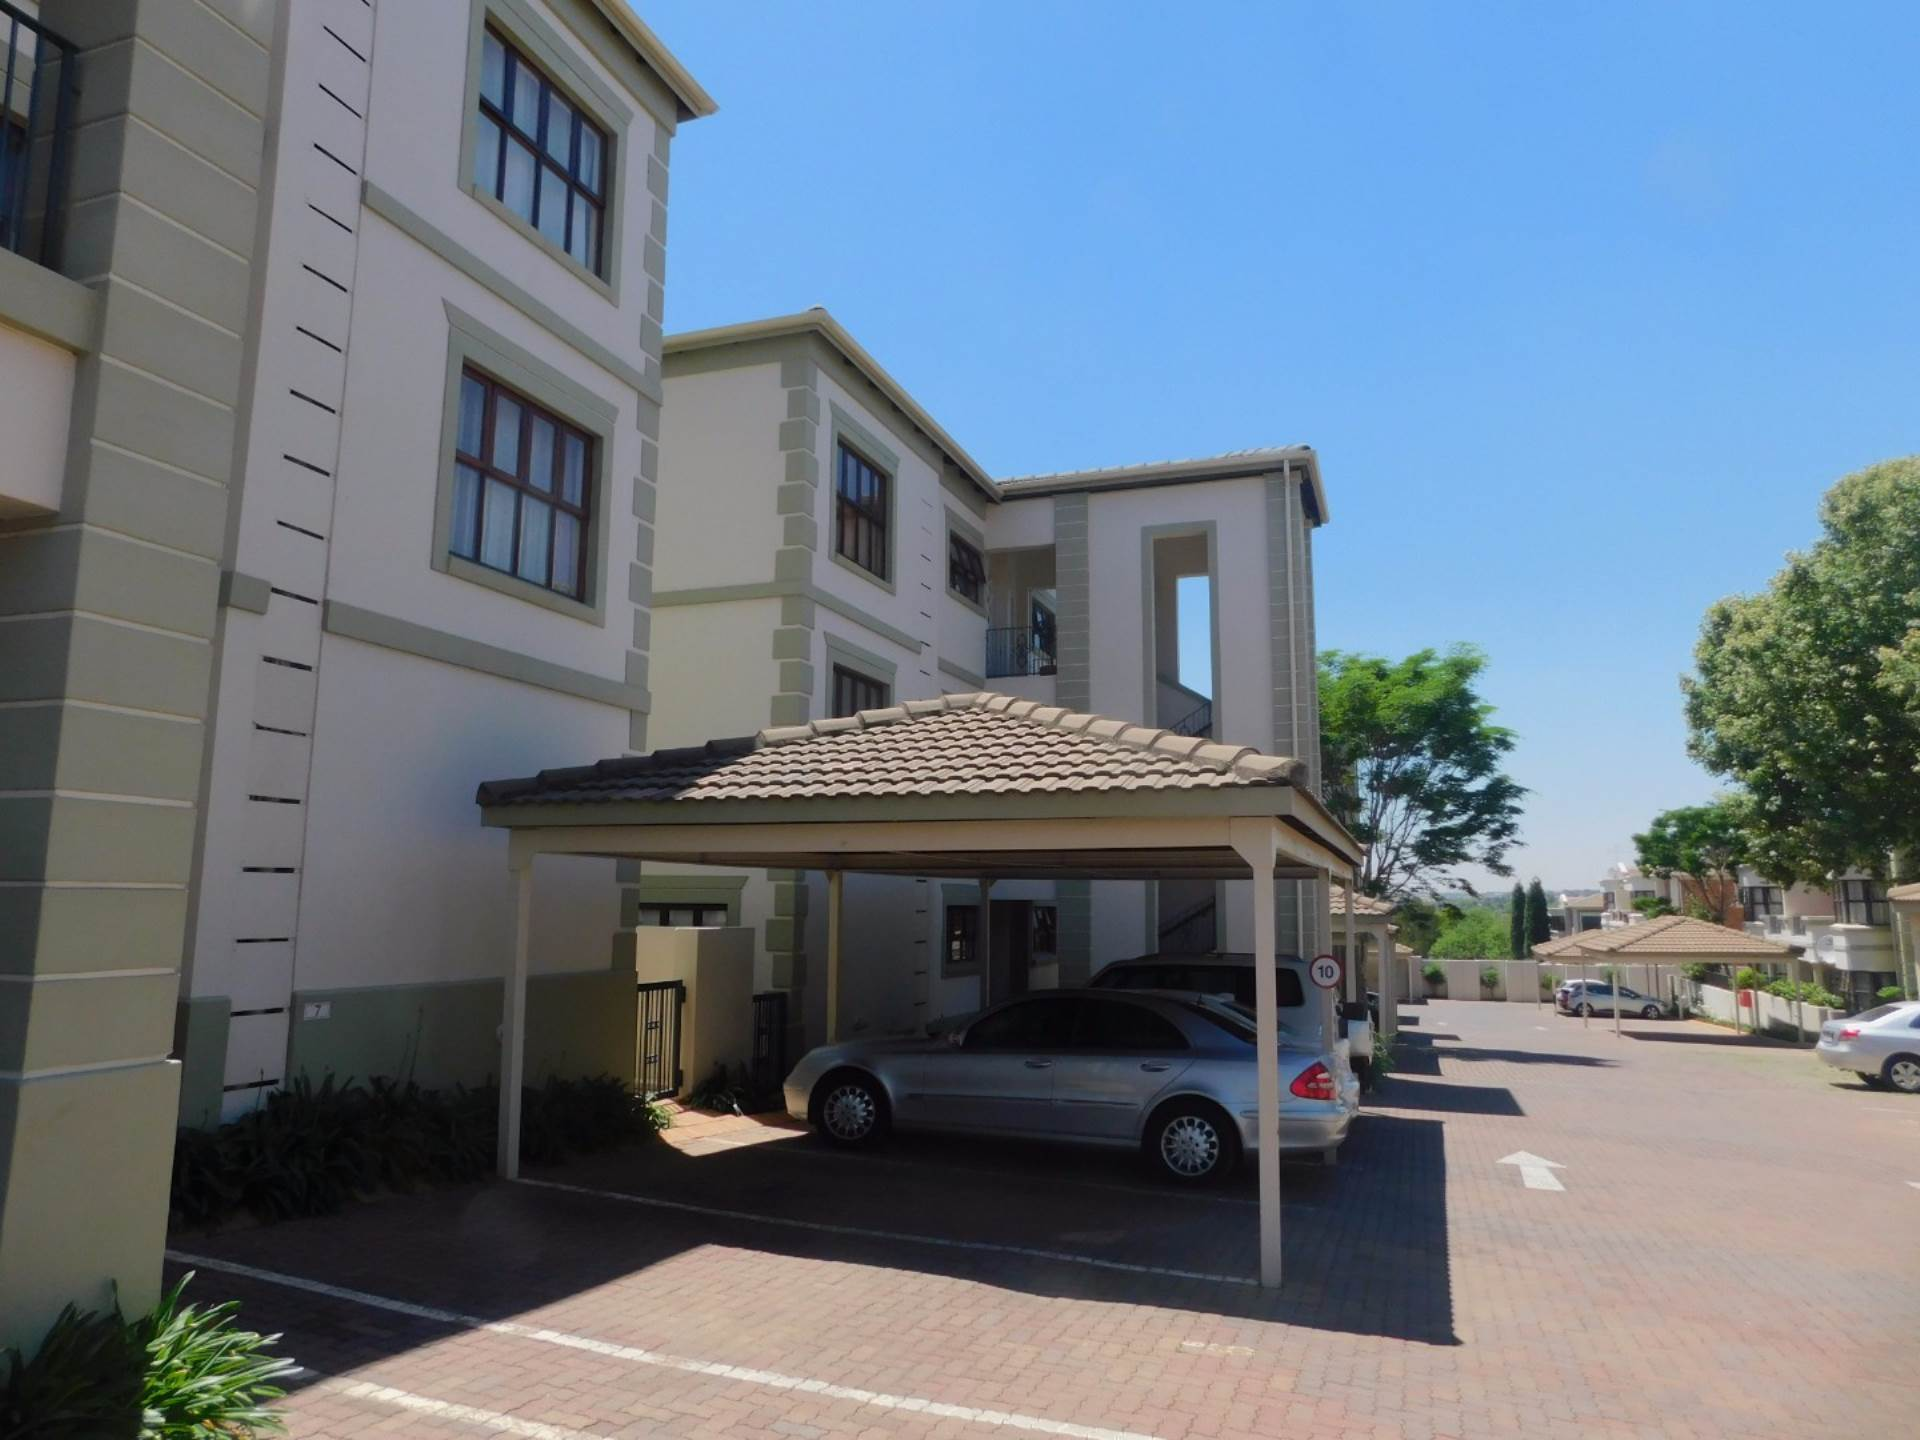 2 BedroomApartment To Rent In Bryanston